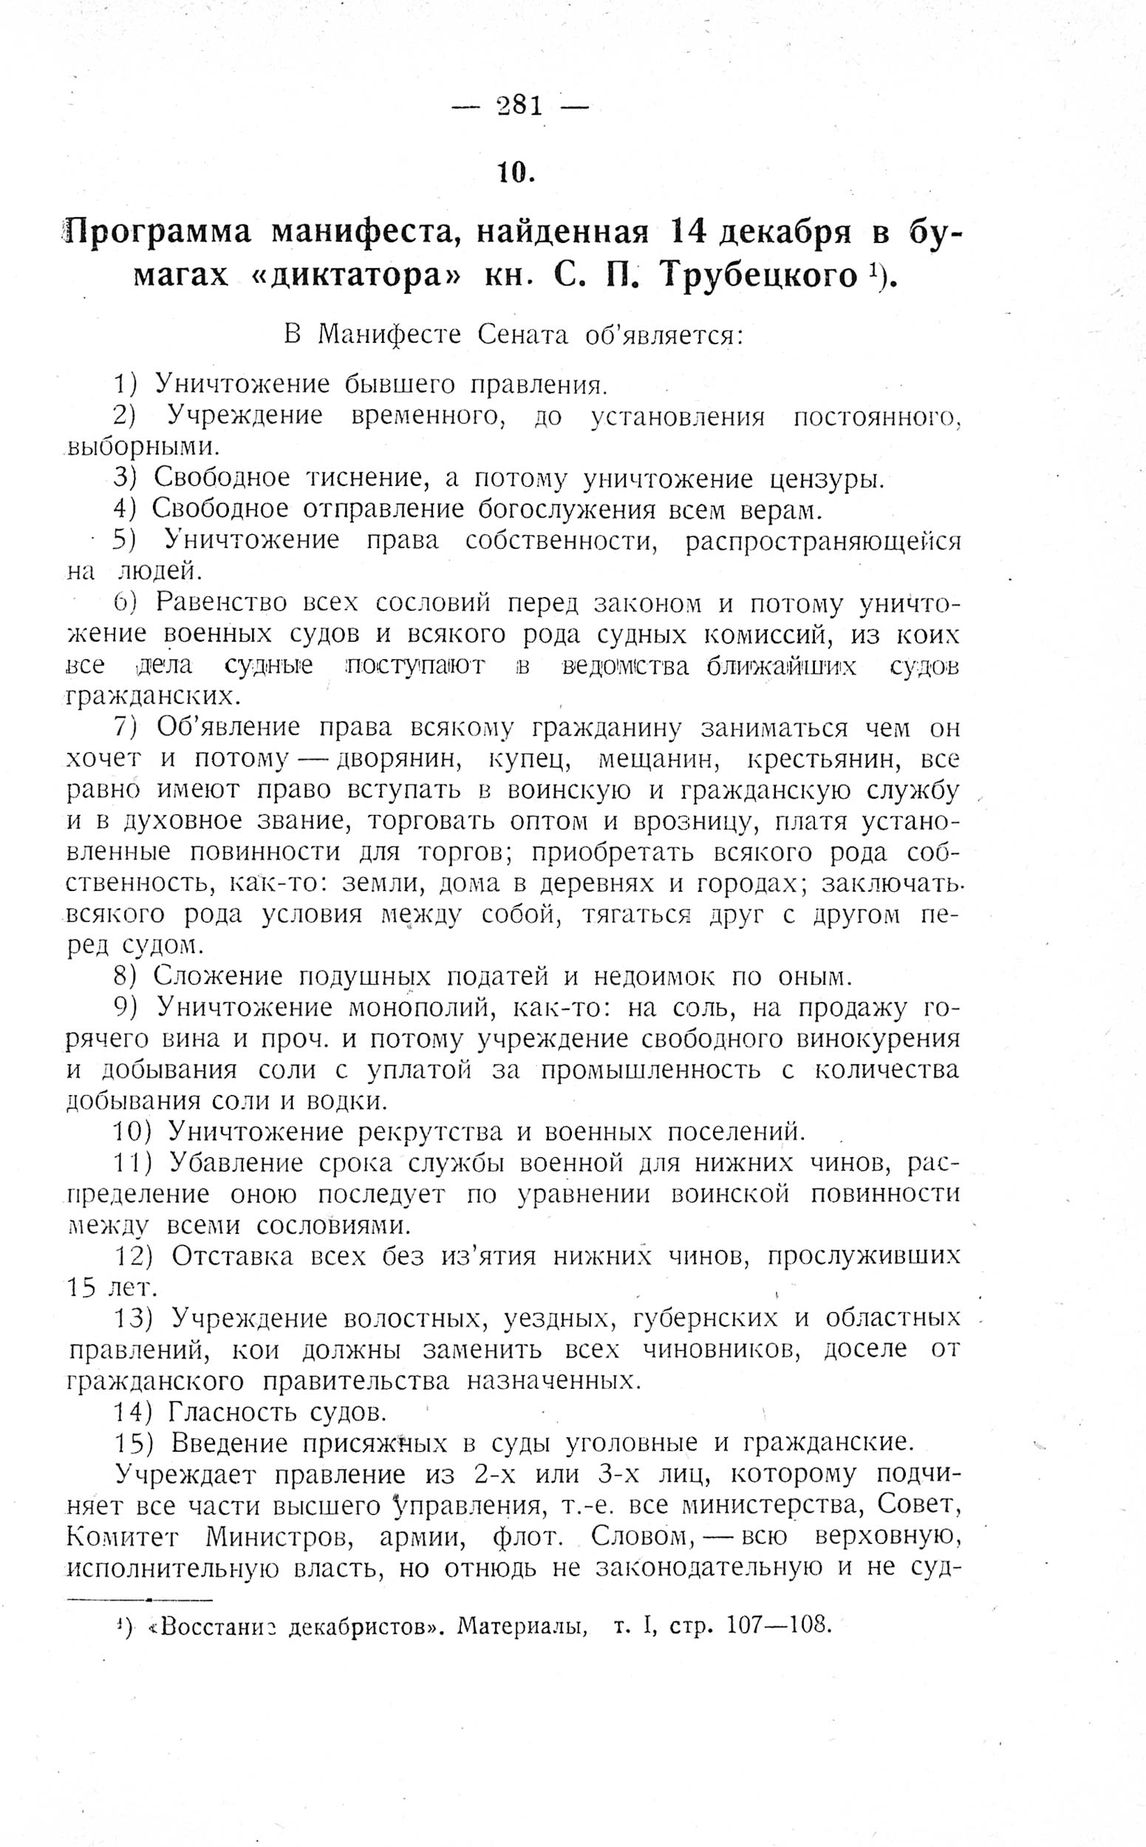 http://elib.shpl.ru/pages/625864/zooms/7